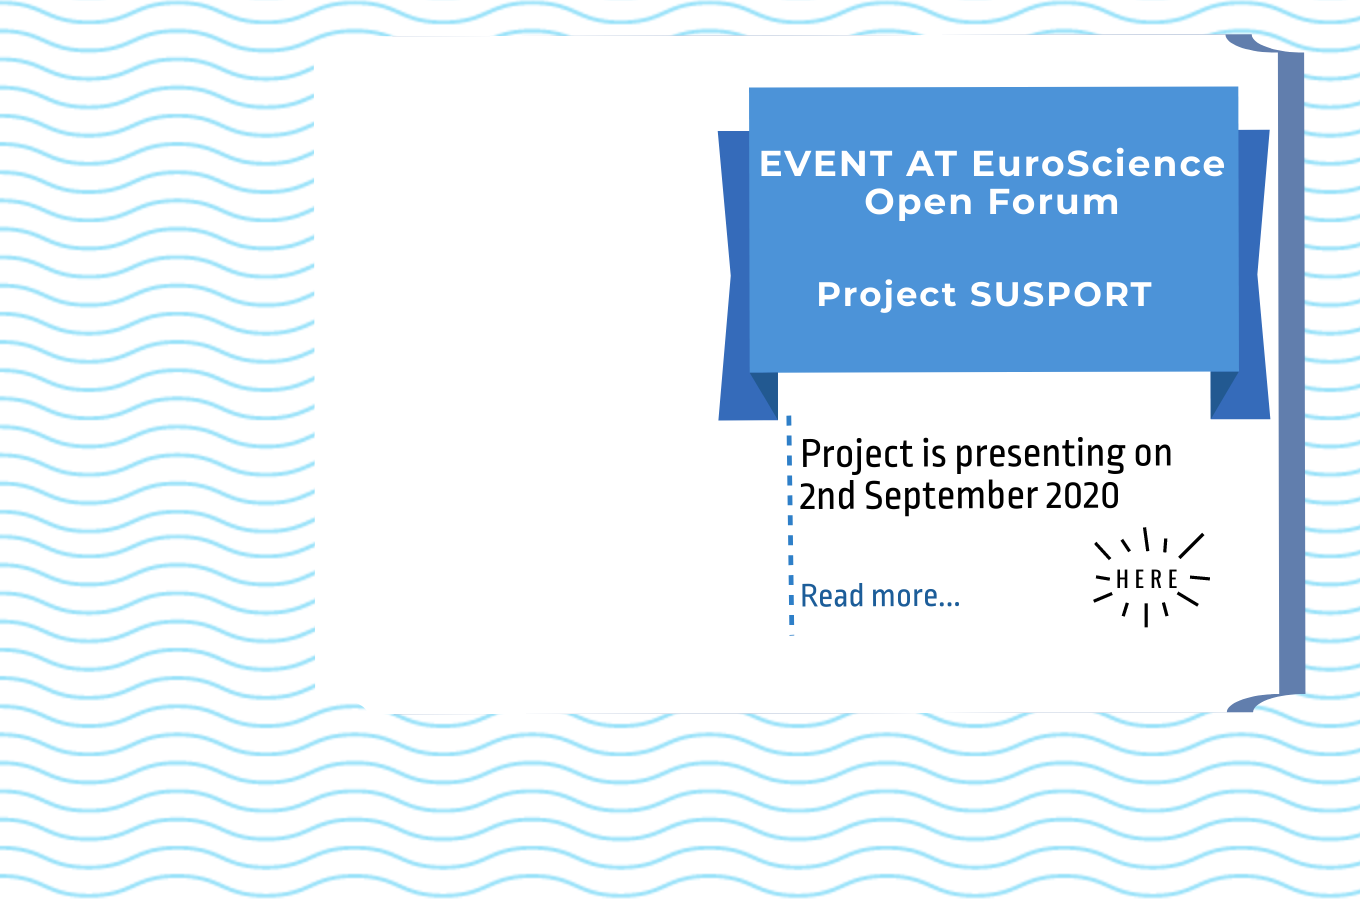 SUSPORT project at @ESOF